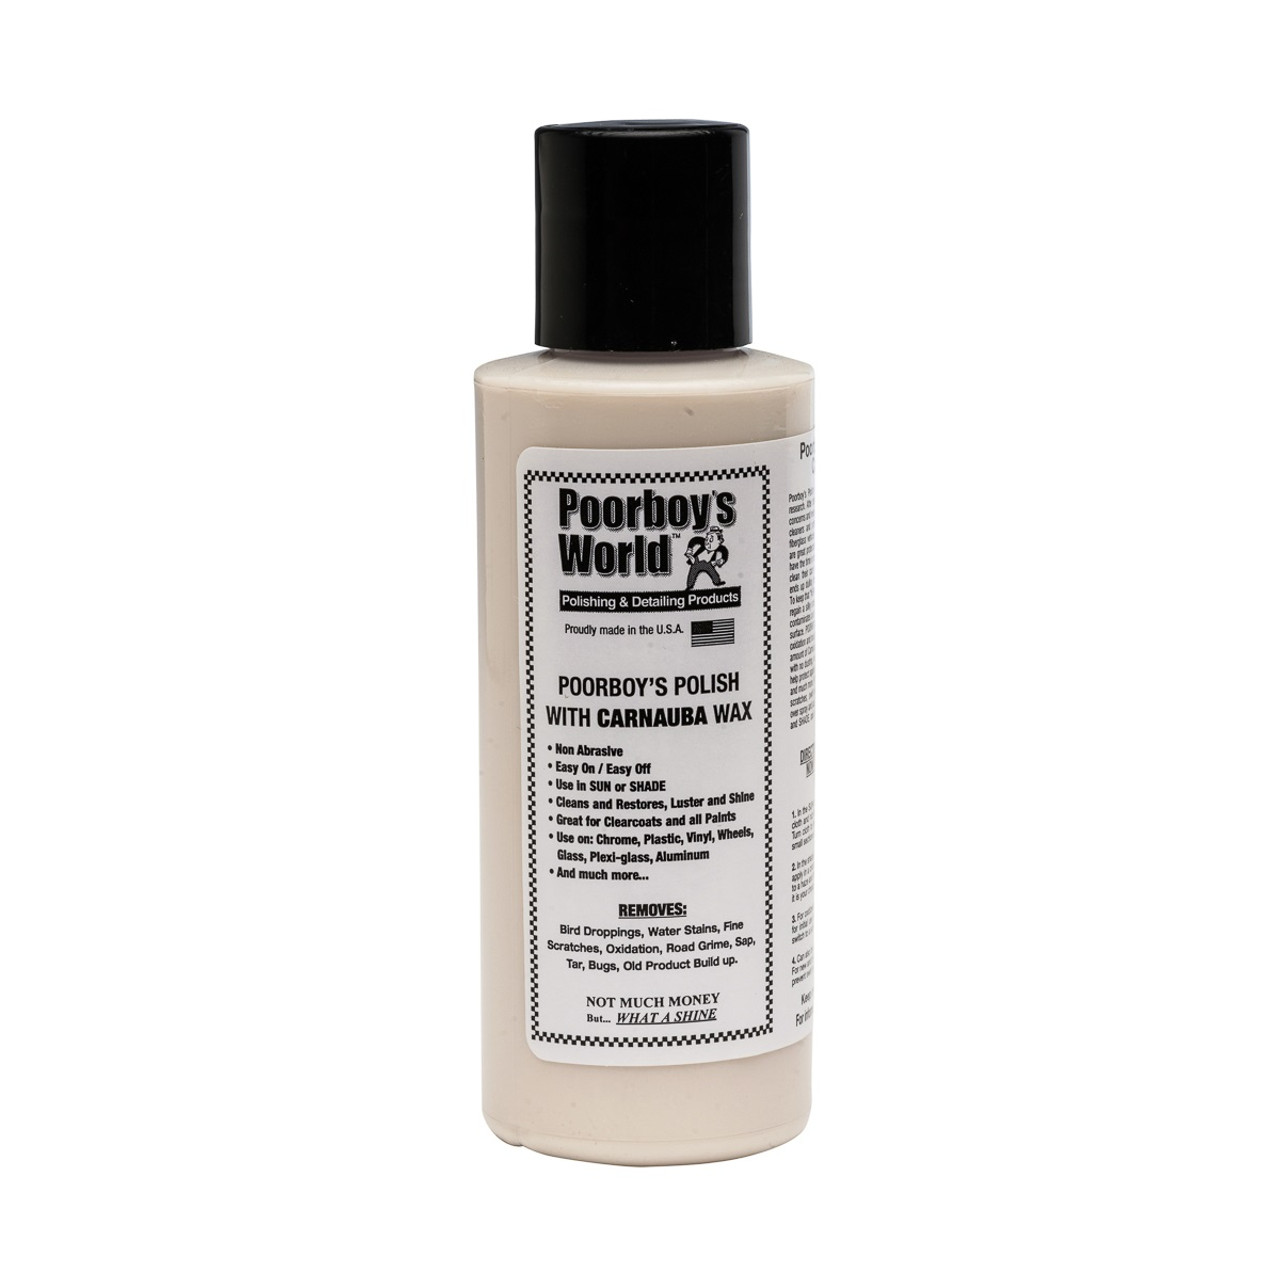 Poorboy's World Polish with Carnauba 4oz - Trial Size